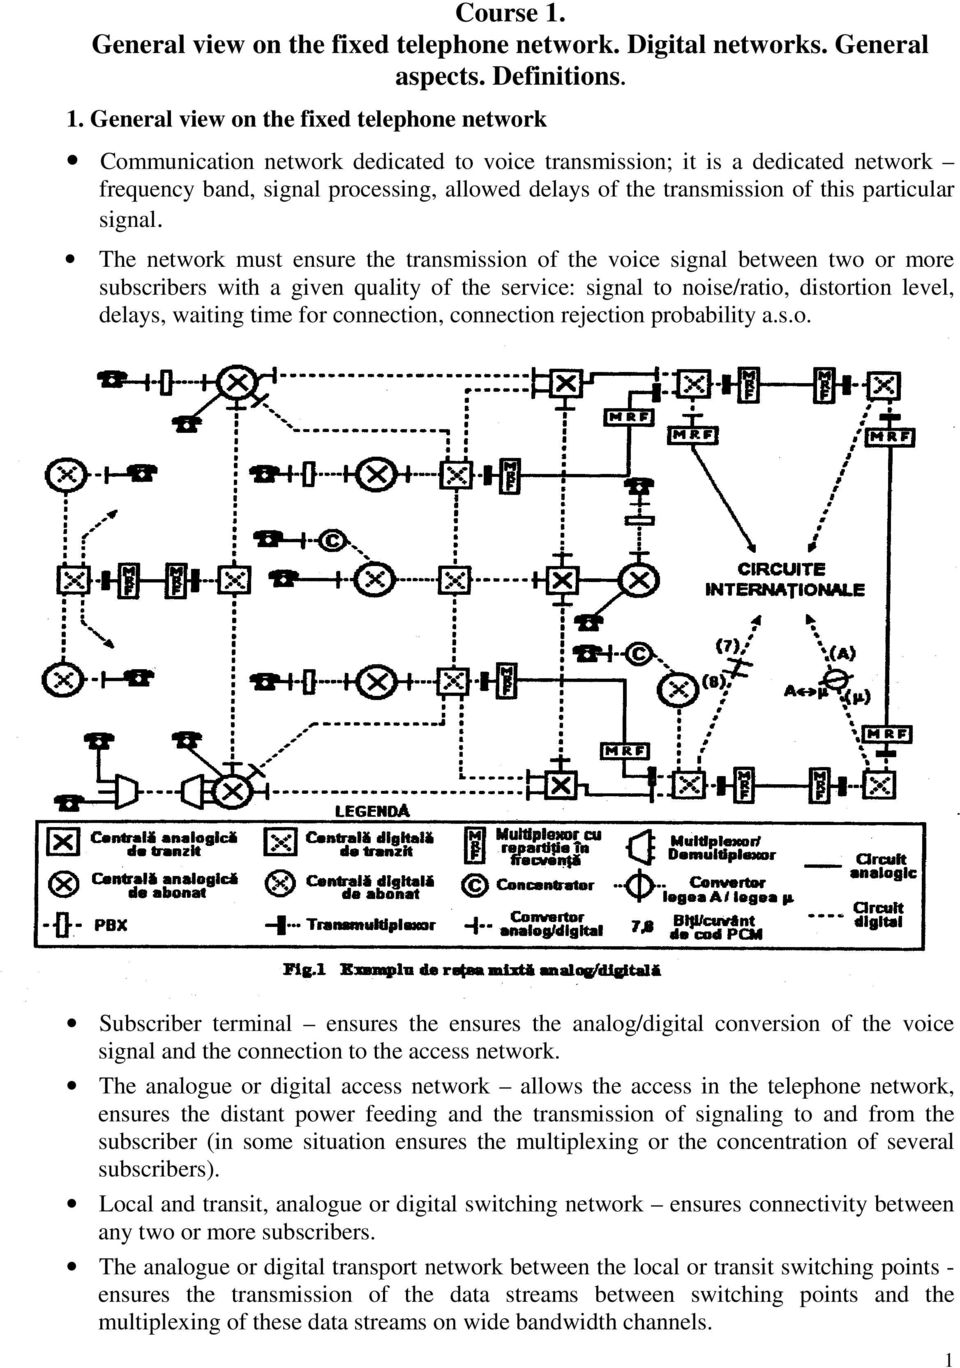 General view on the fixed telephone network Communication network dedicated to voice transmission; it is a dedicated network frequency band, signal processing, allowed delays of the transmission of